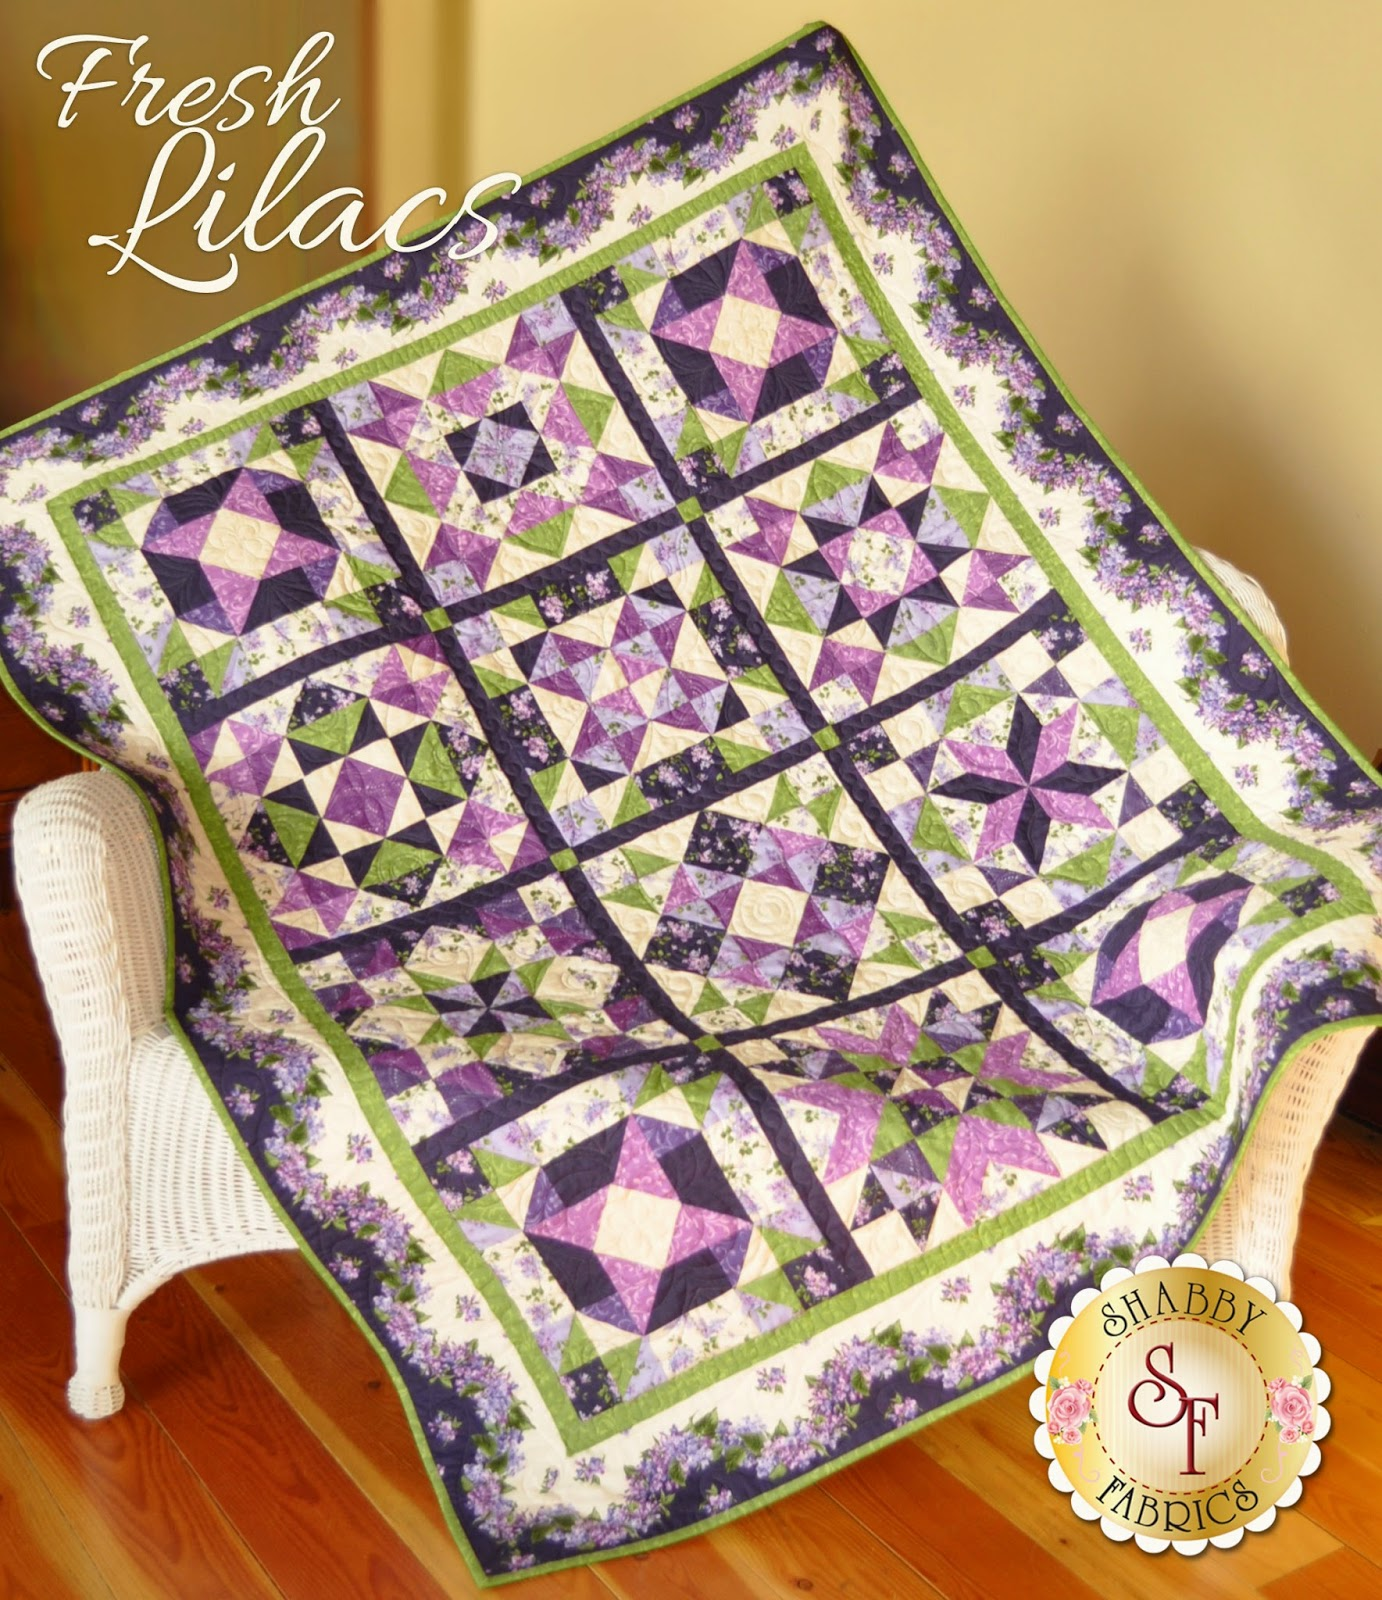 Fresh Lilacs Block of the Month from Shabby Fabrics